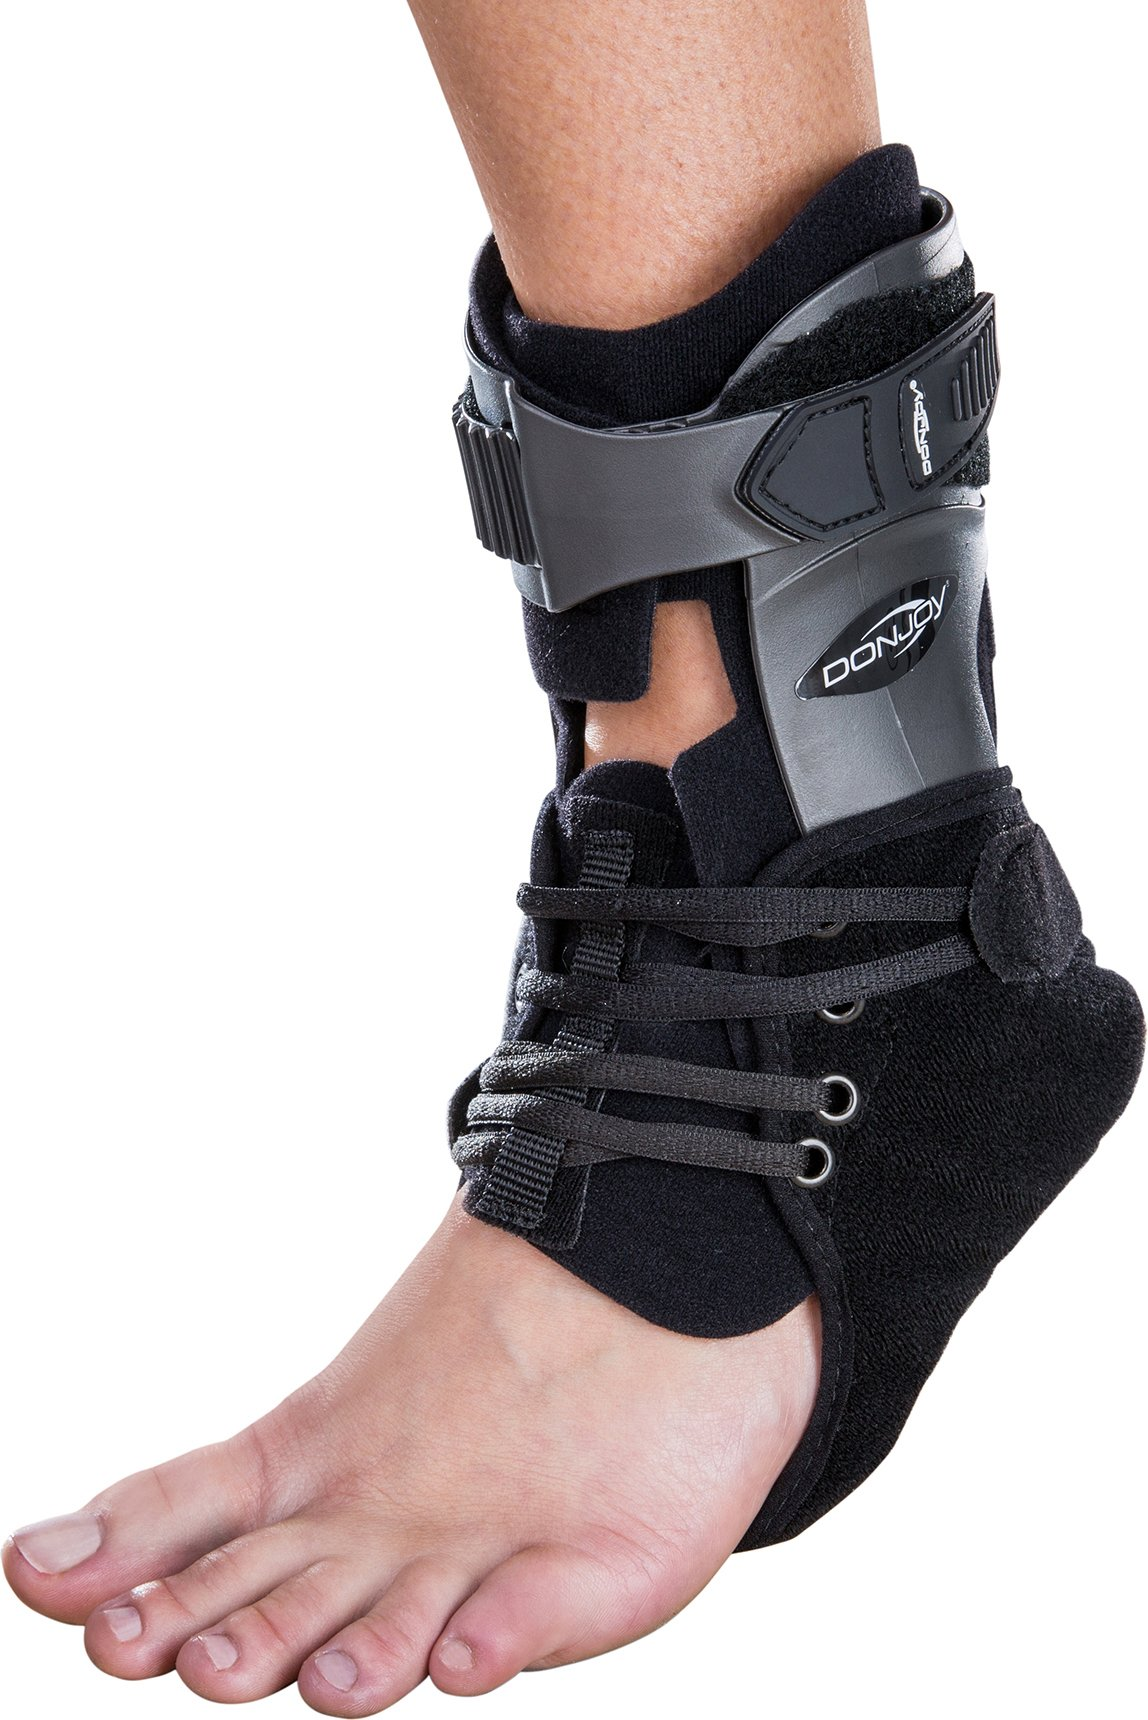 DonJoy Velocity ES (Extra Support) Ankle Brace: Standard Calf, Left Foot, Medium